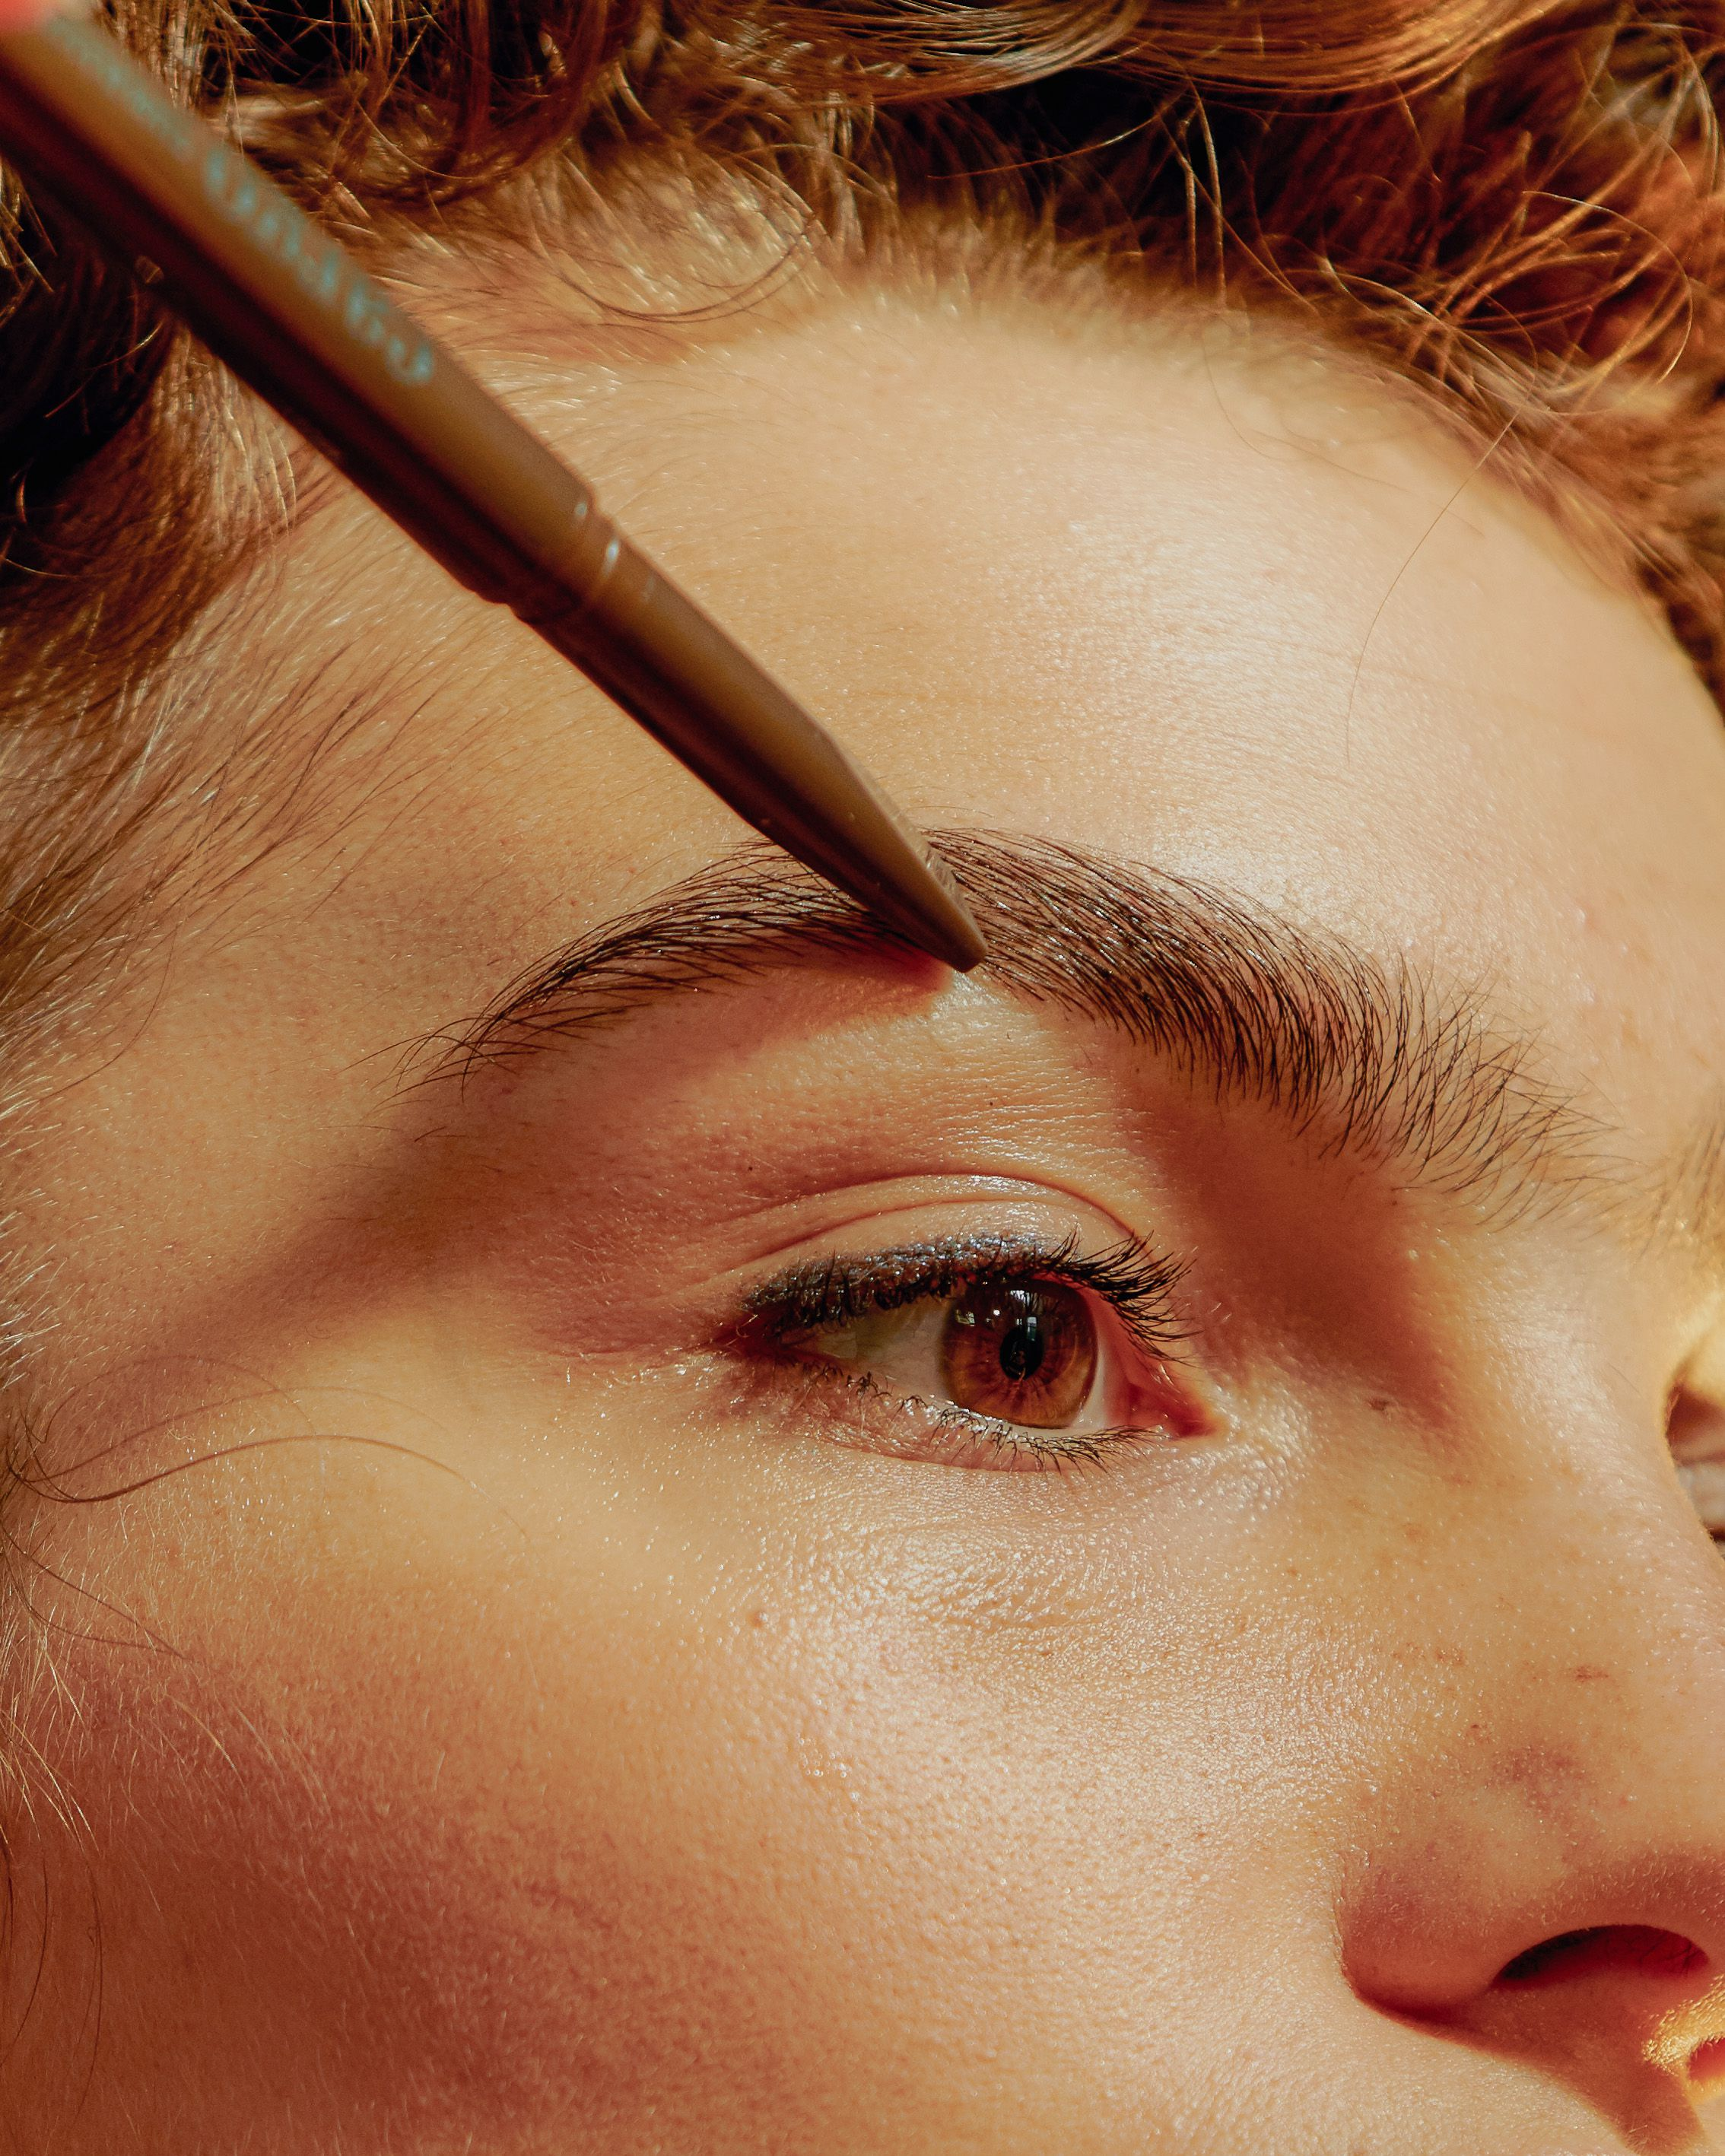 The 10 Best Eyebrow Fillers of 2020